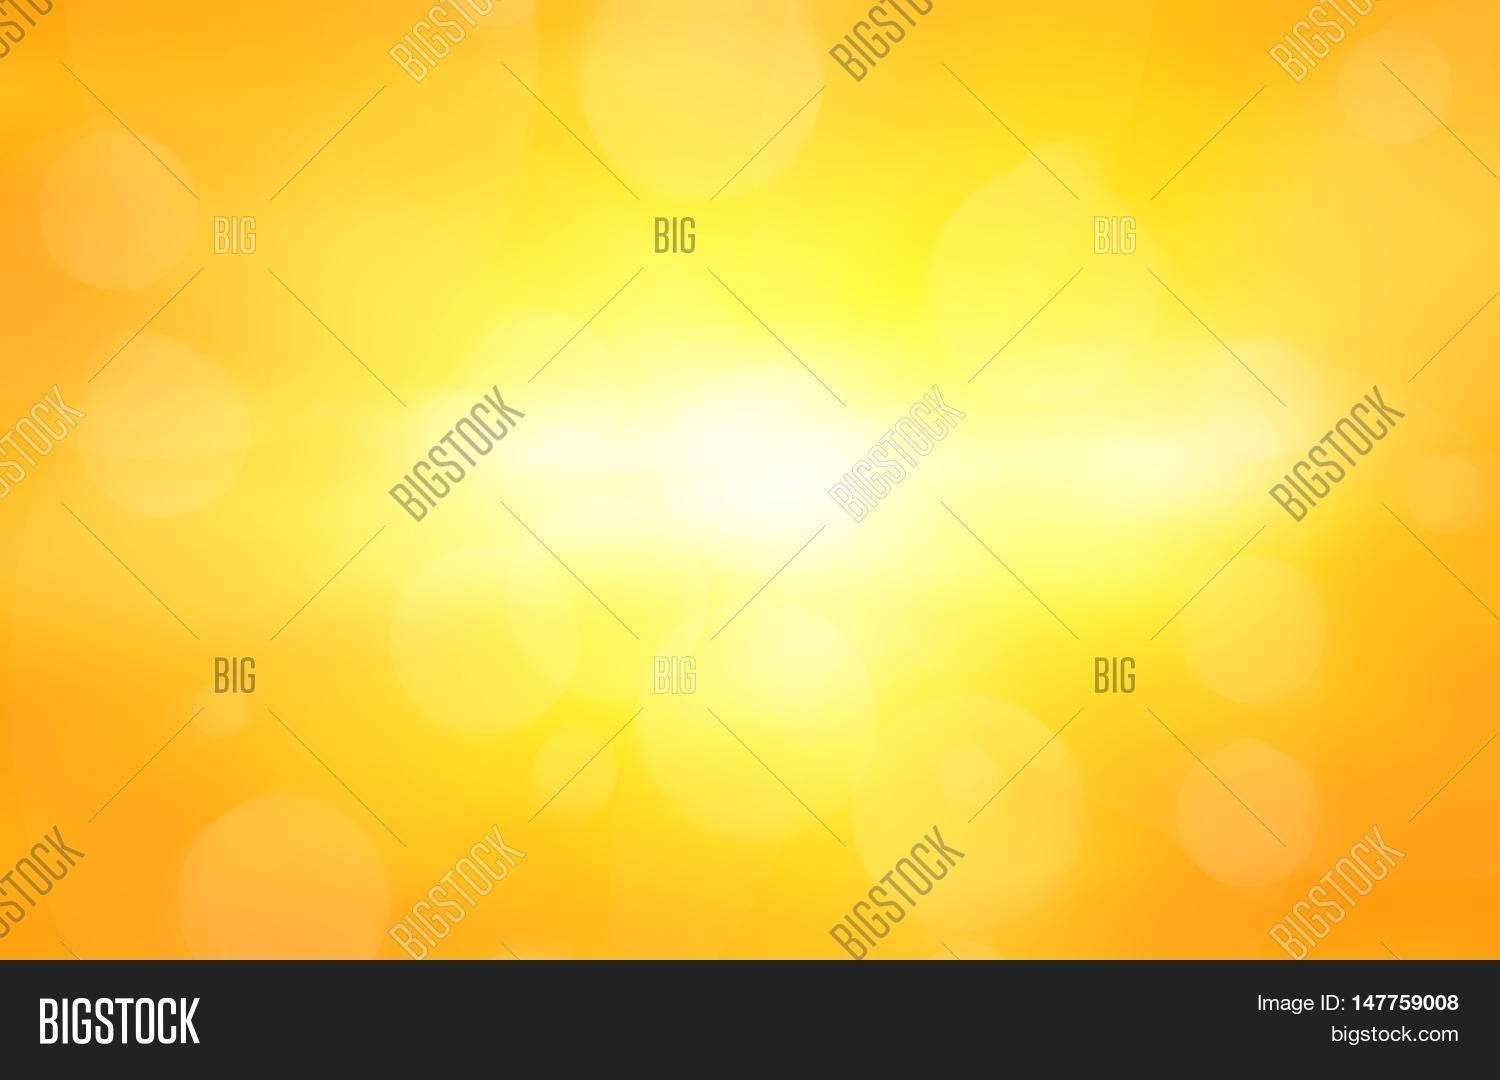 Abstract Orange Background. Bokeh Image  for Background Pattern Light Orange  49jwn